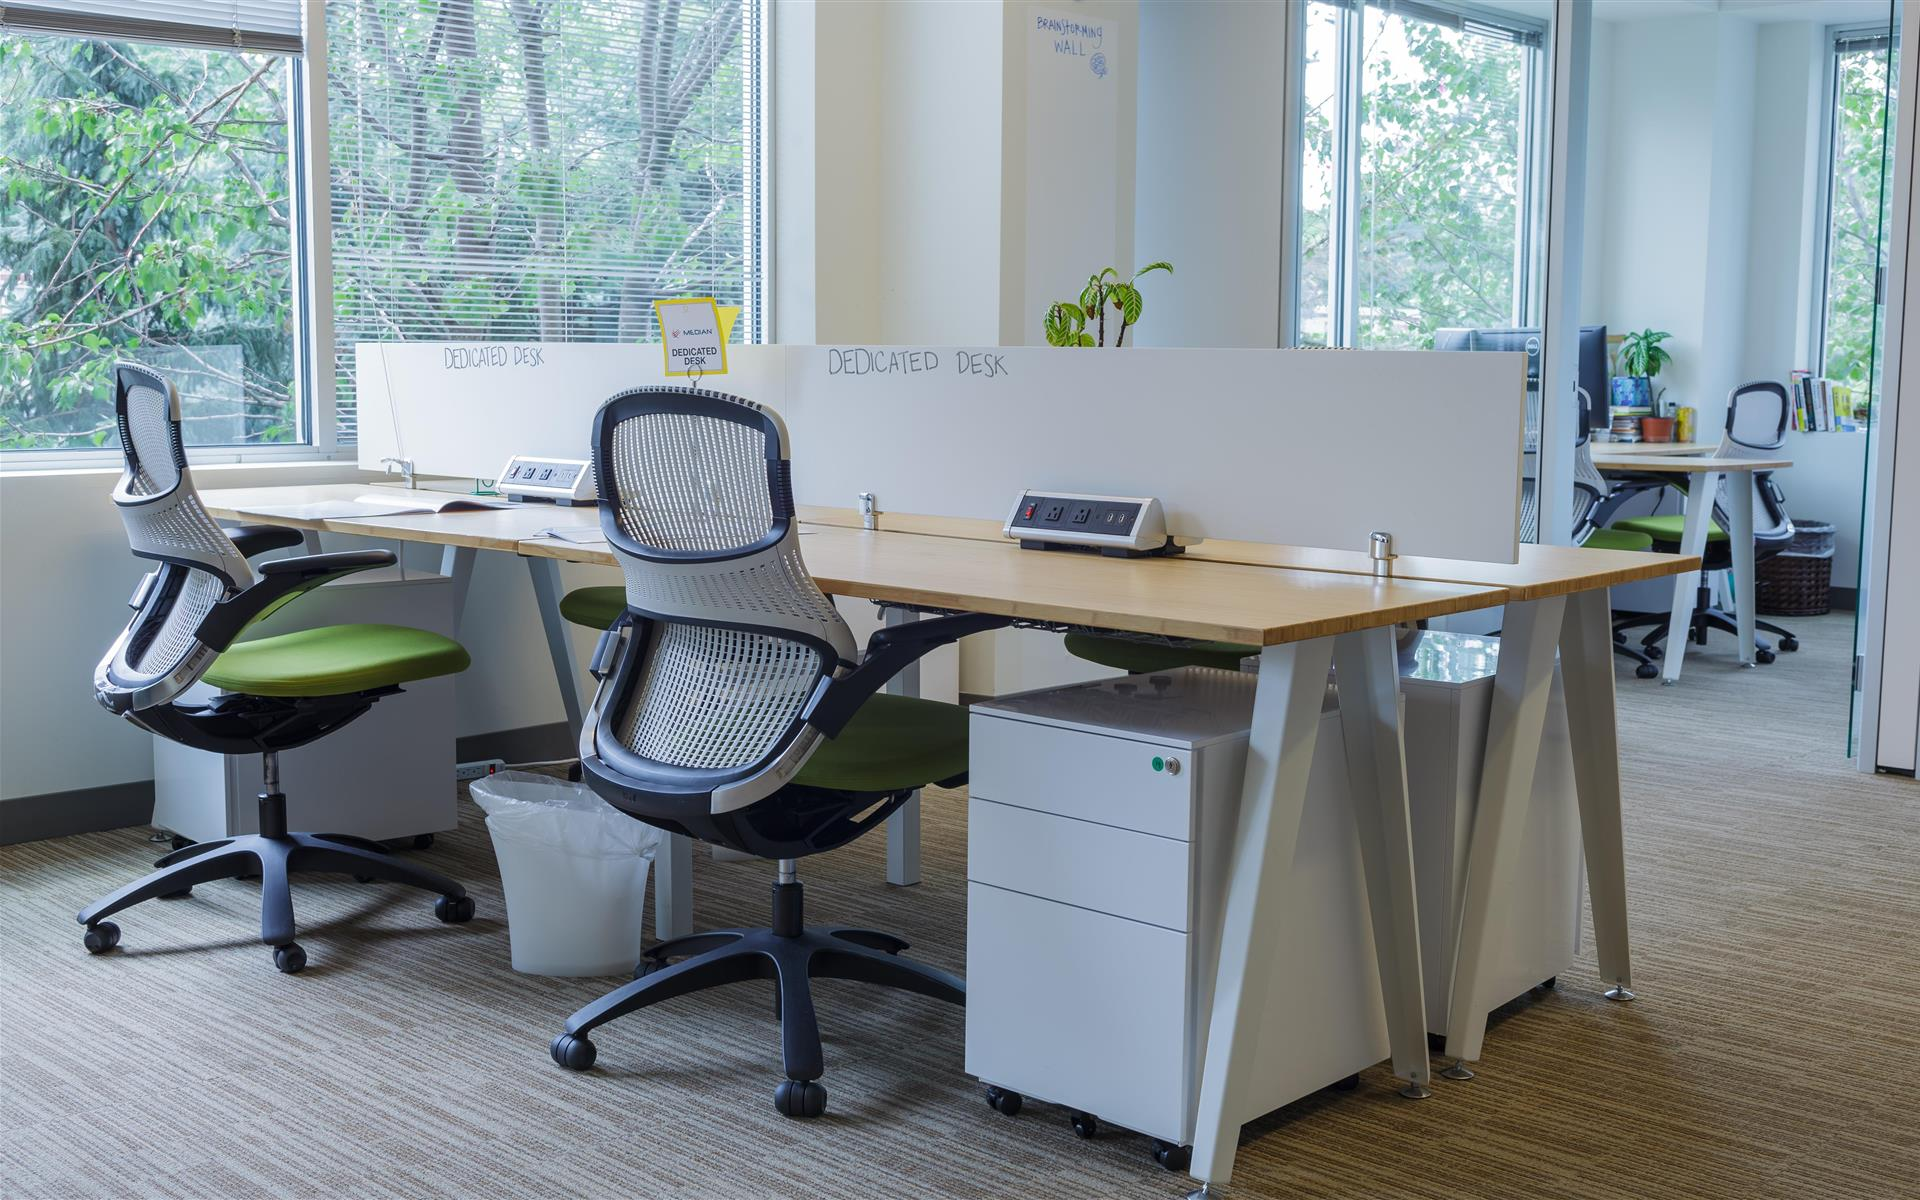 NGIN Workplace - Shared Desk